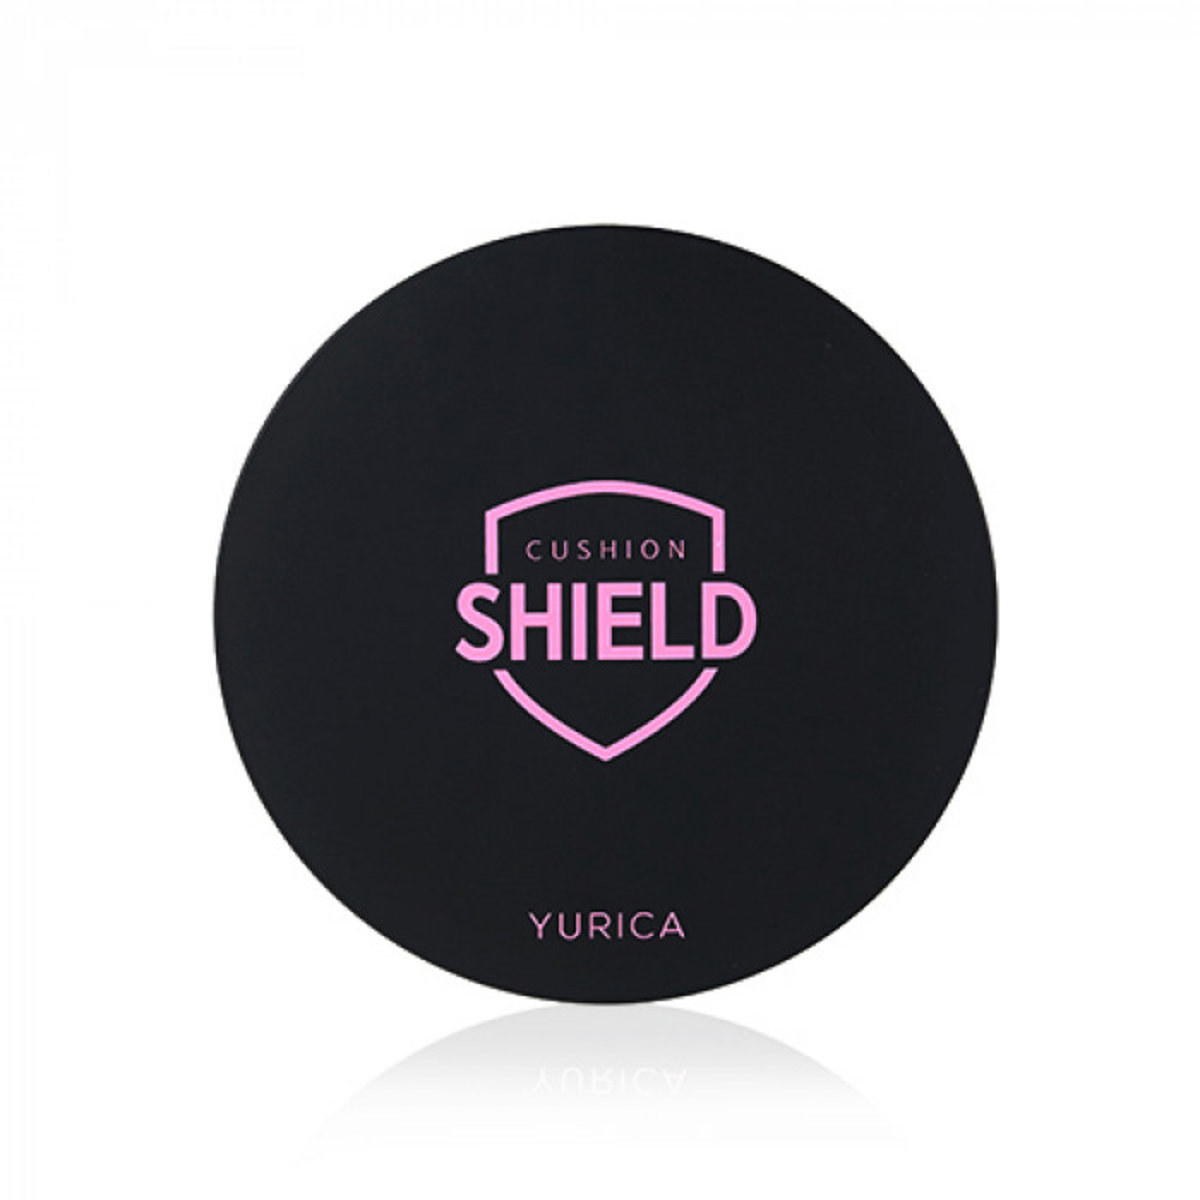 Shield Cushion no.23 Natural (Expiry Date: 09/2019)